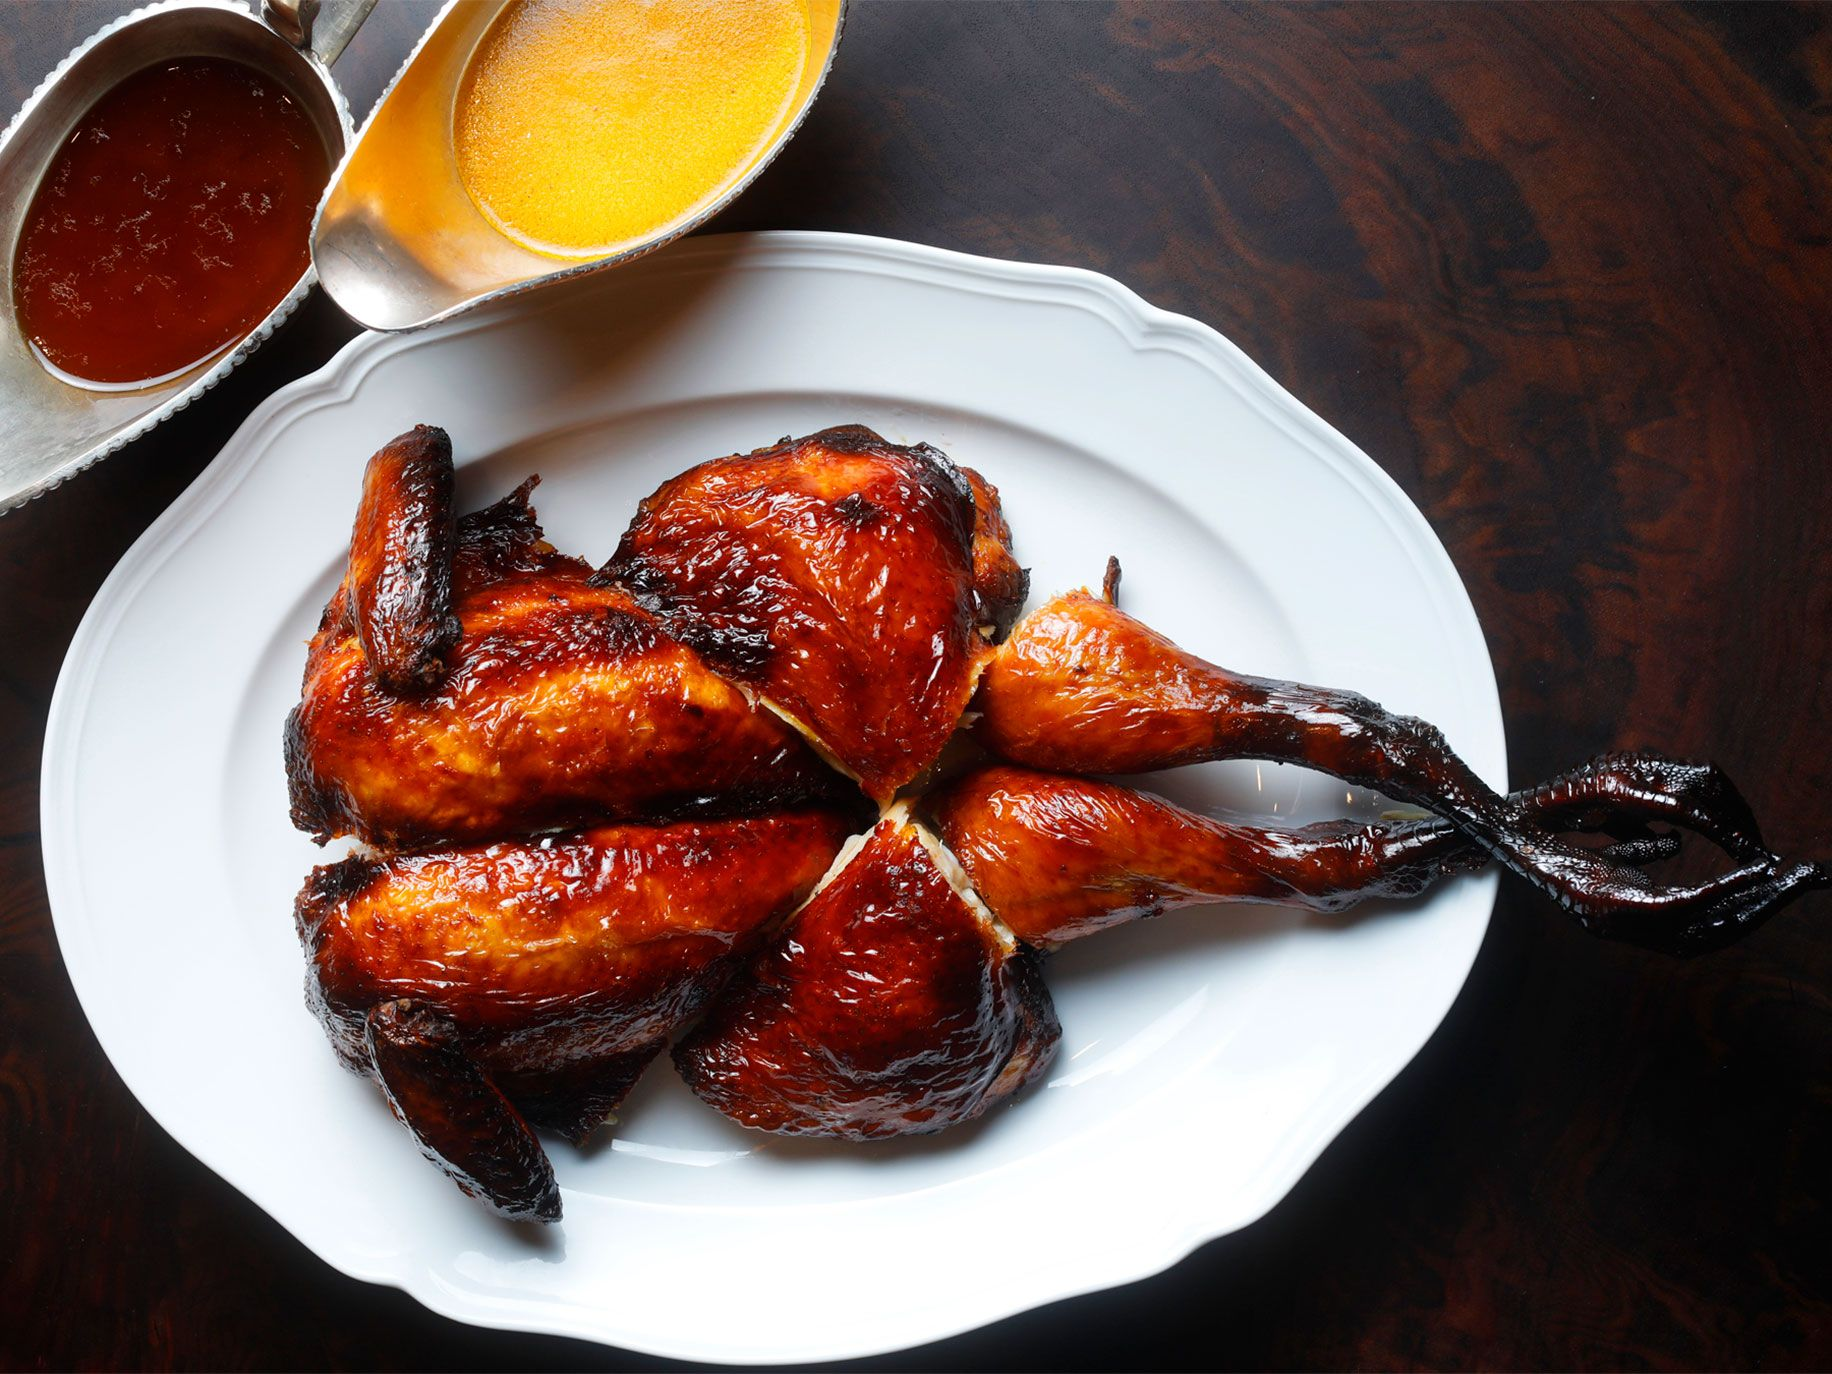 Skenes's honey-coated whole chicken resembles a lacquered Peking duck.